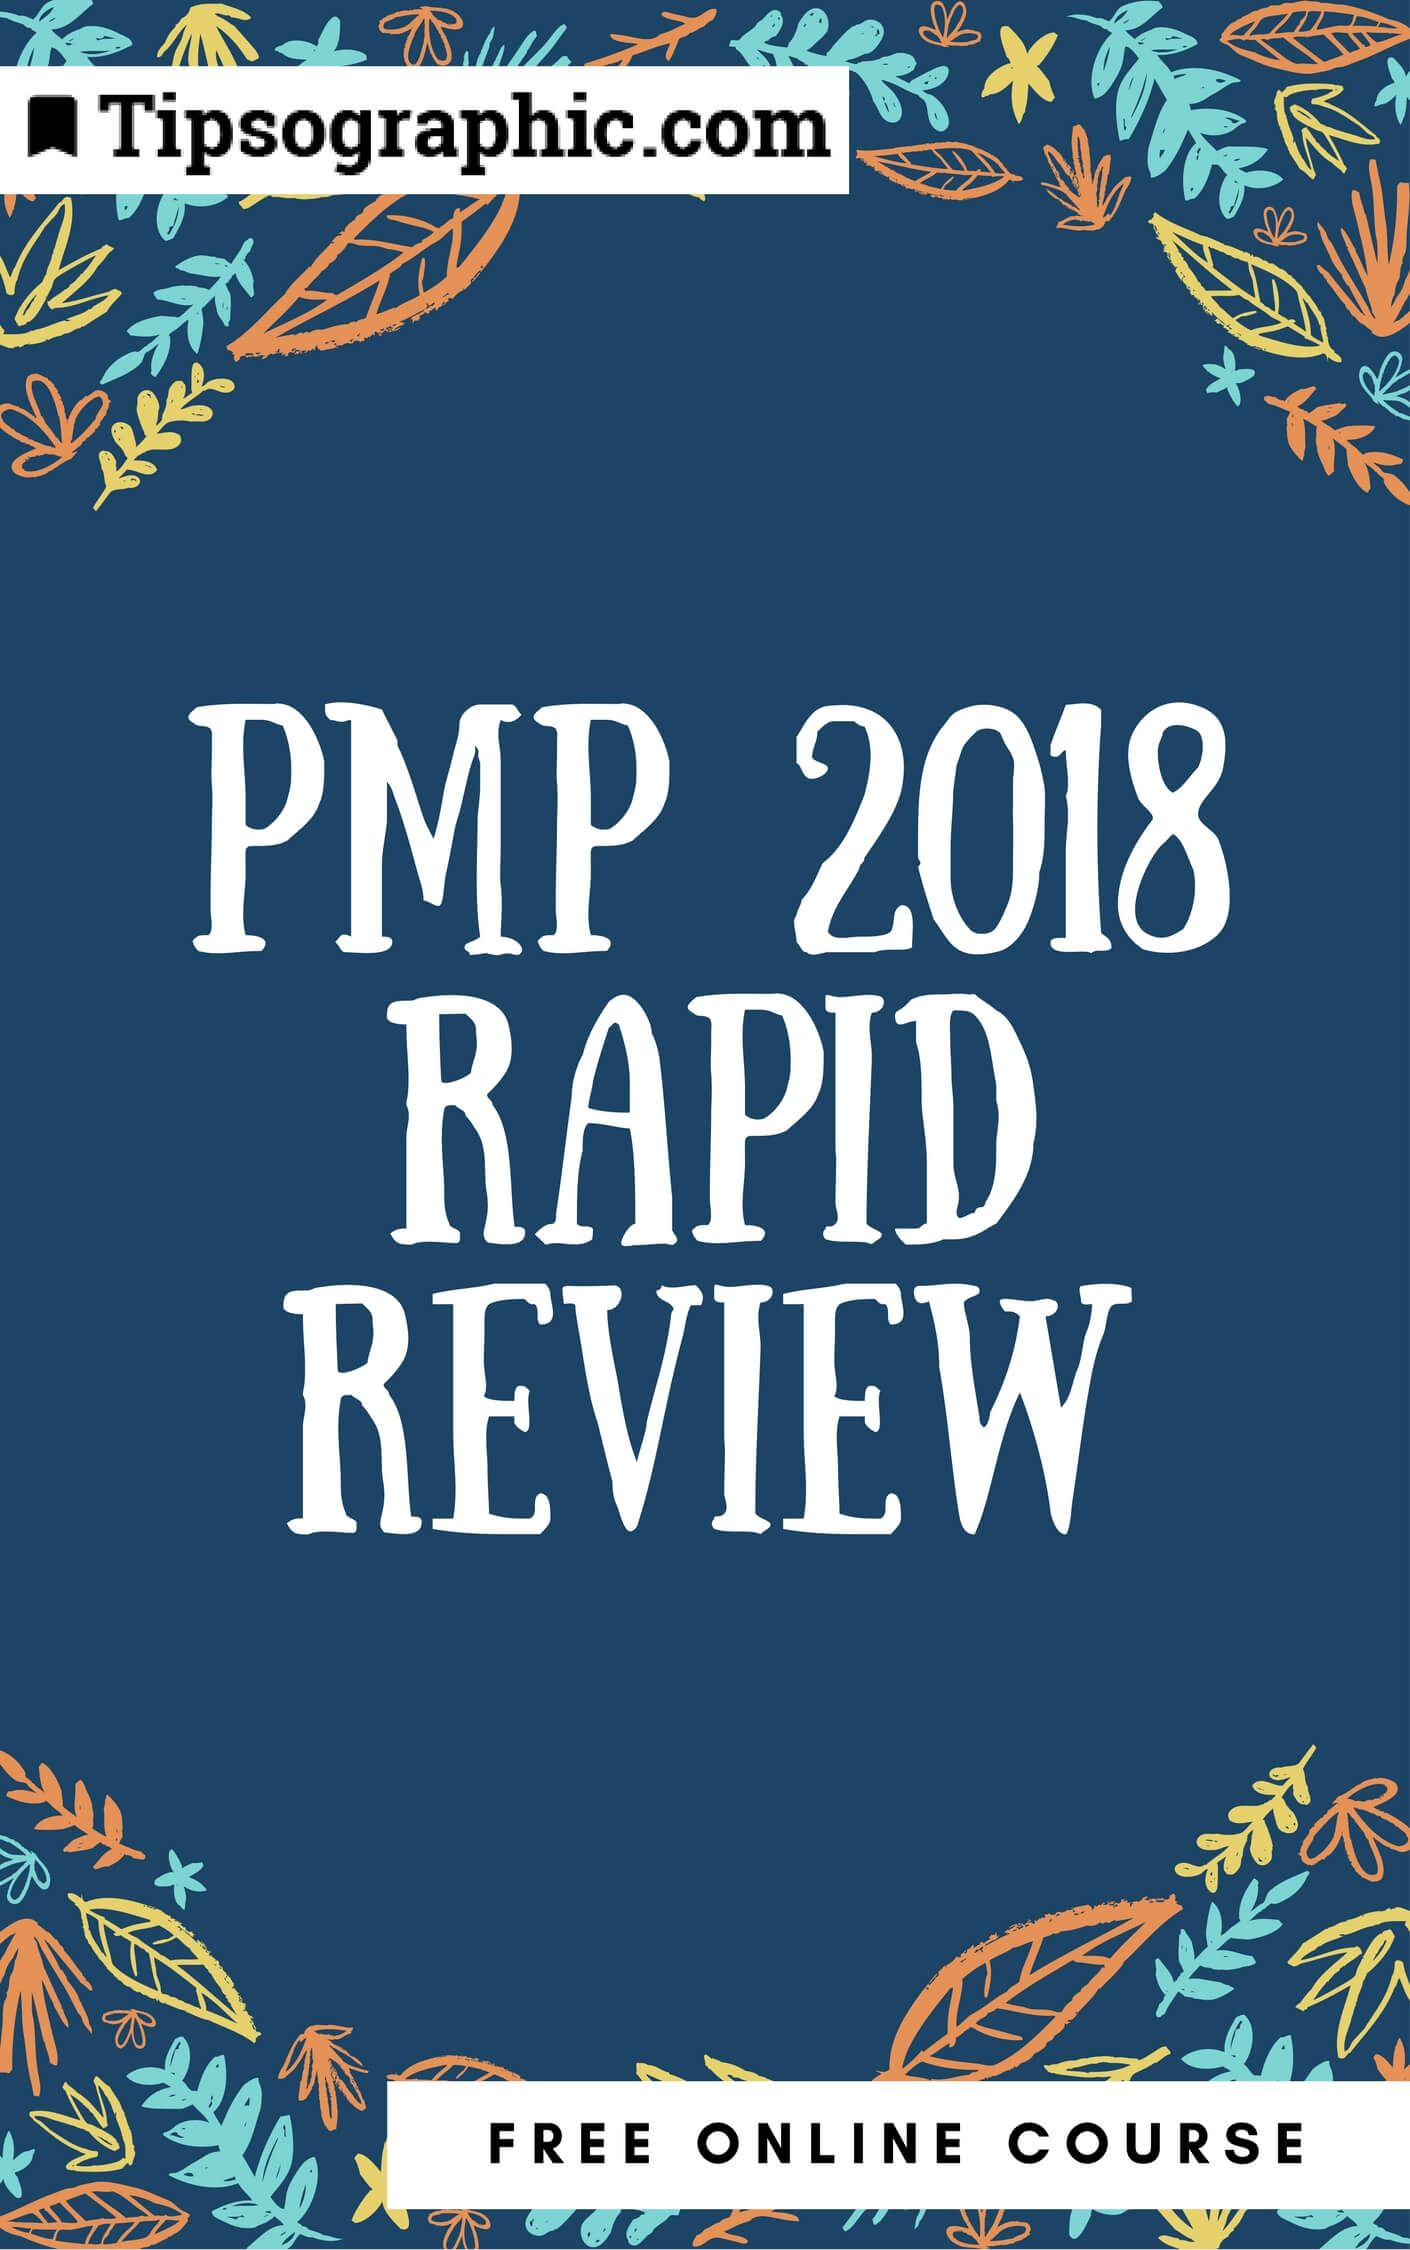 Pmp certification project risk management tips based on pmbok pmp 2018 rapid review free online course tipsographic xflitez Gallery